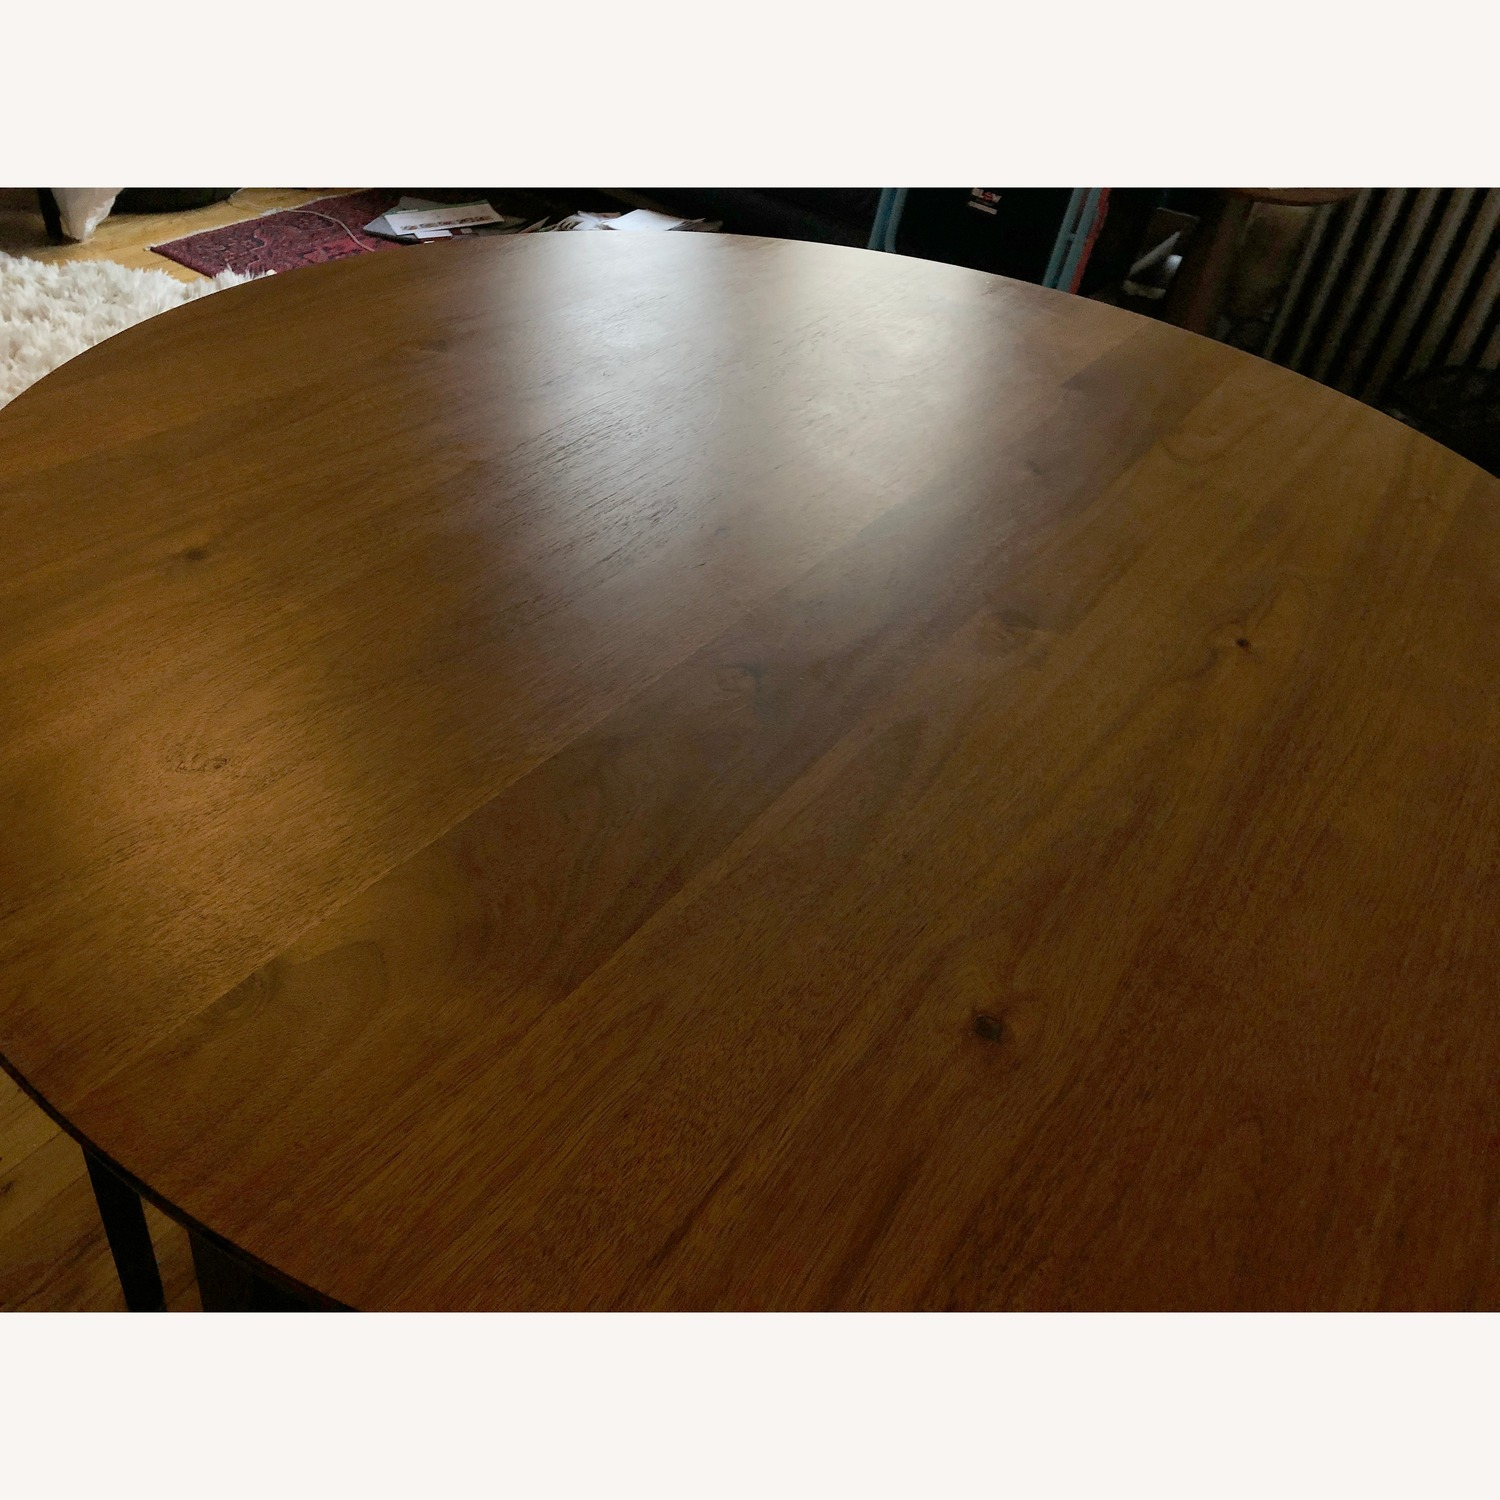 CB2 Round Dining Table w/ 4 Inlaid Chairs - image-5